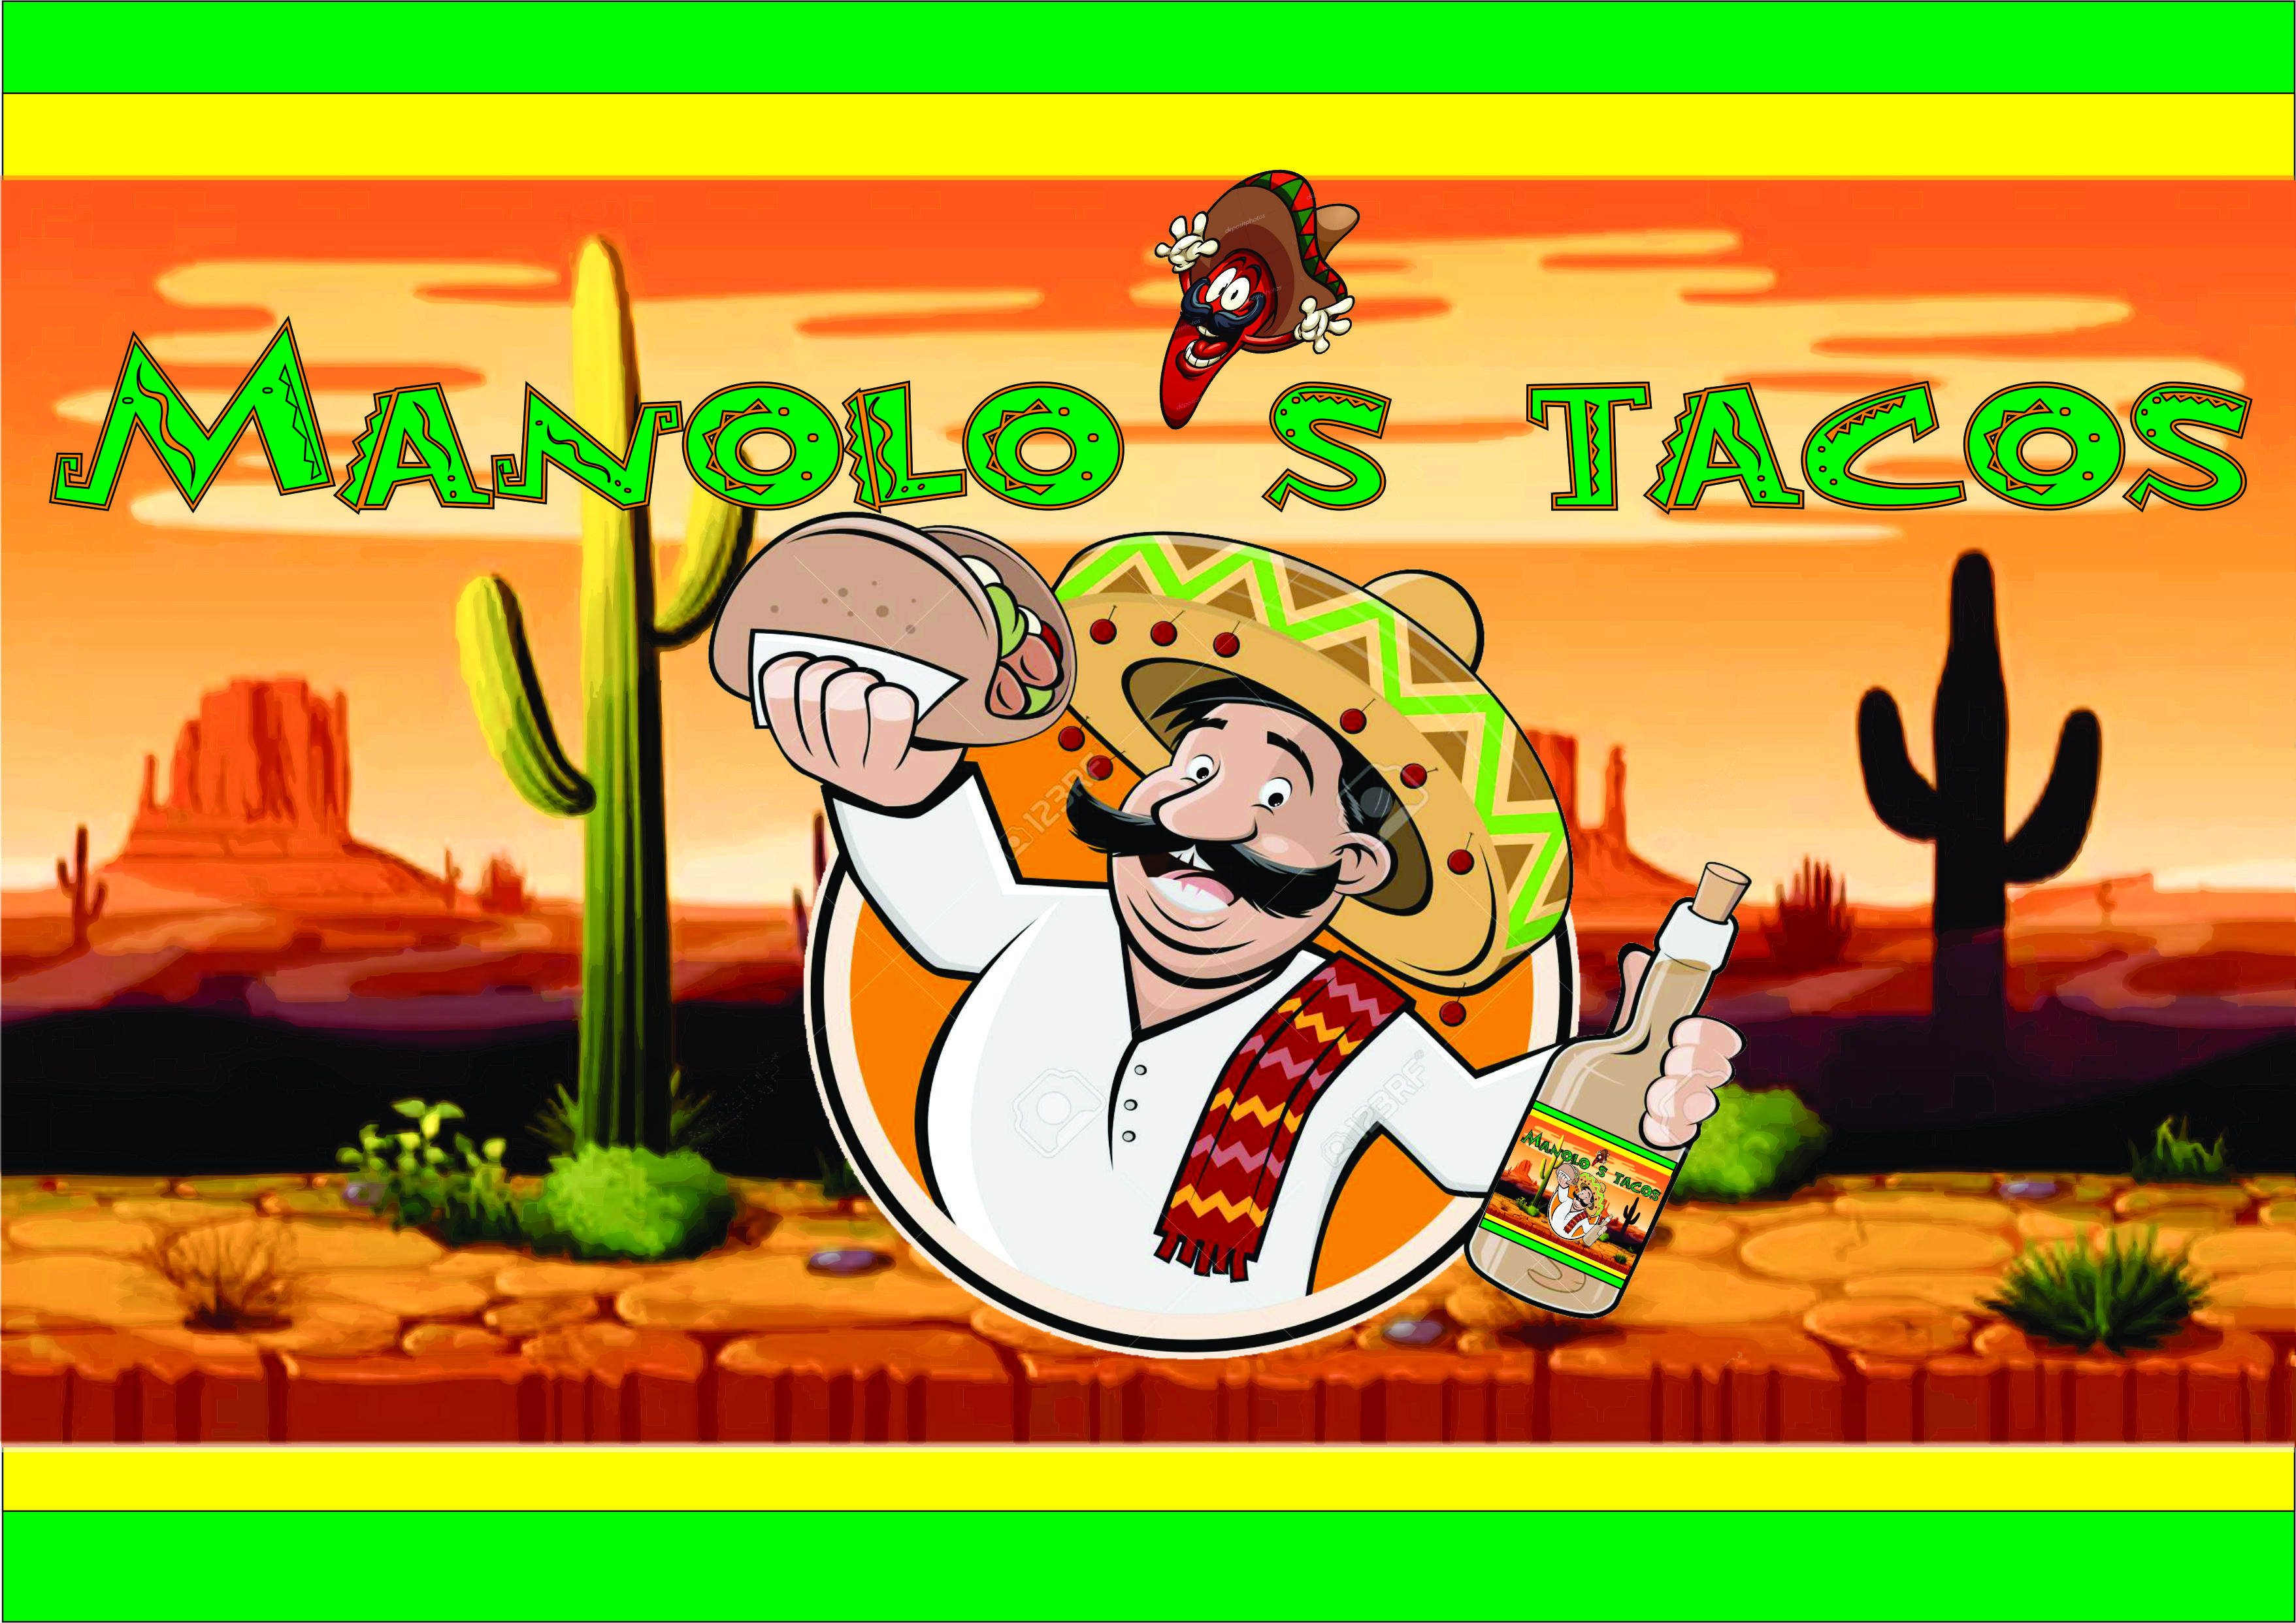 Logo-Fast Food - Manolo's Tacos